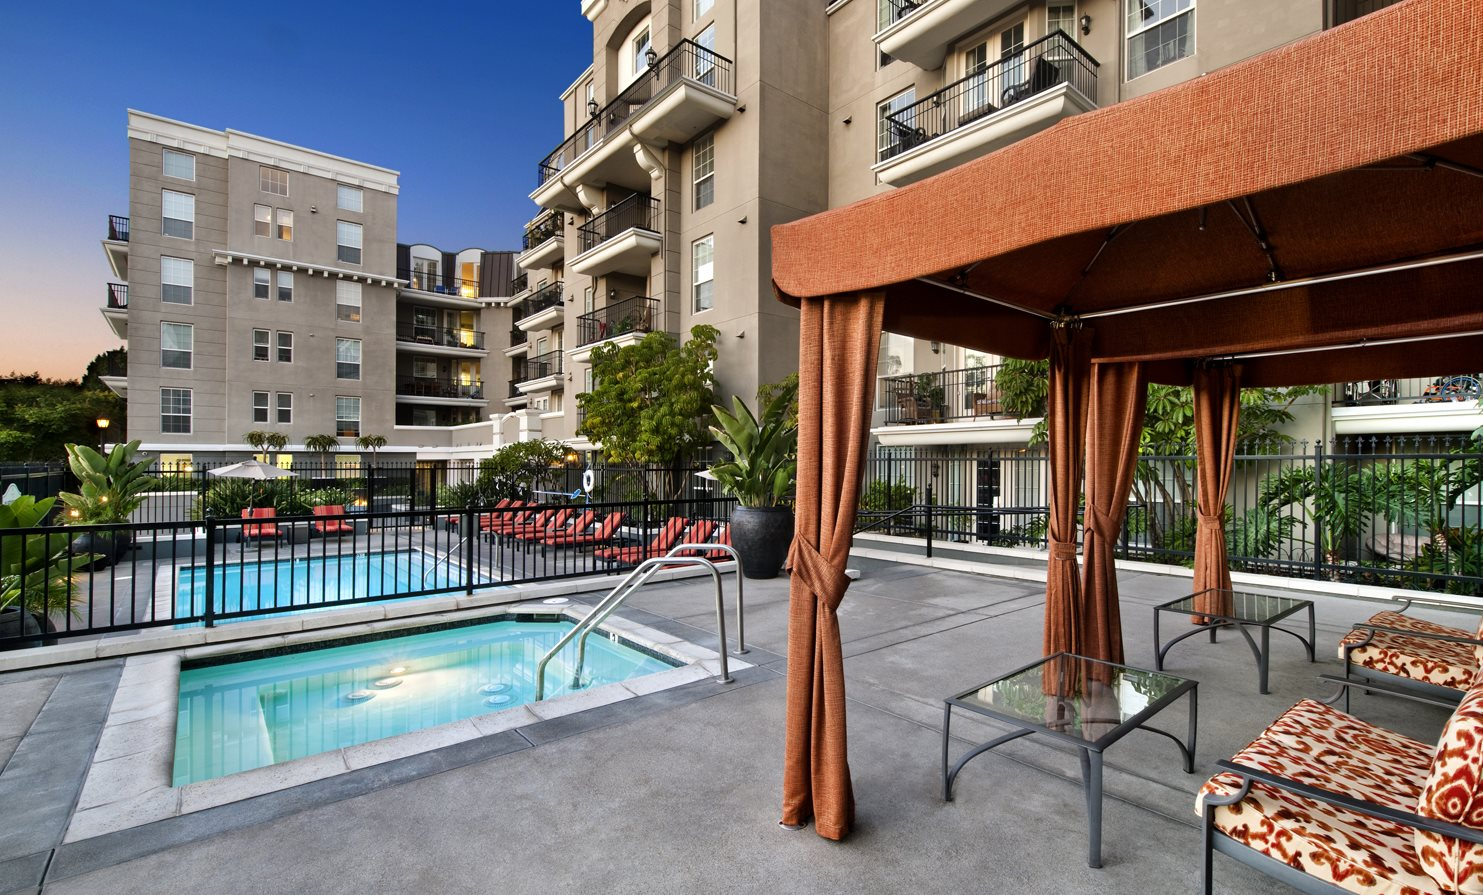 Pool Cabana & Outdoor Entertainment Bar at Community